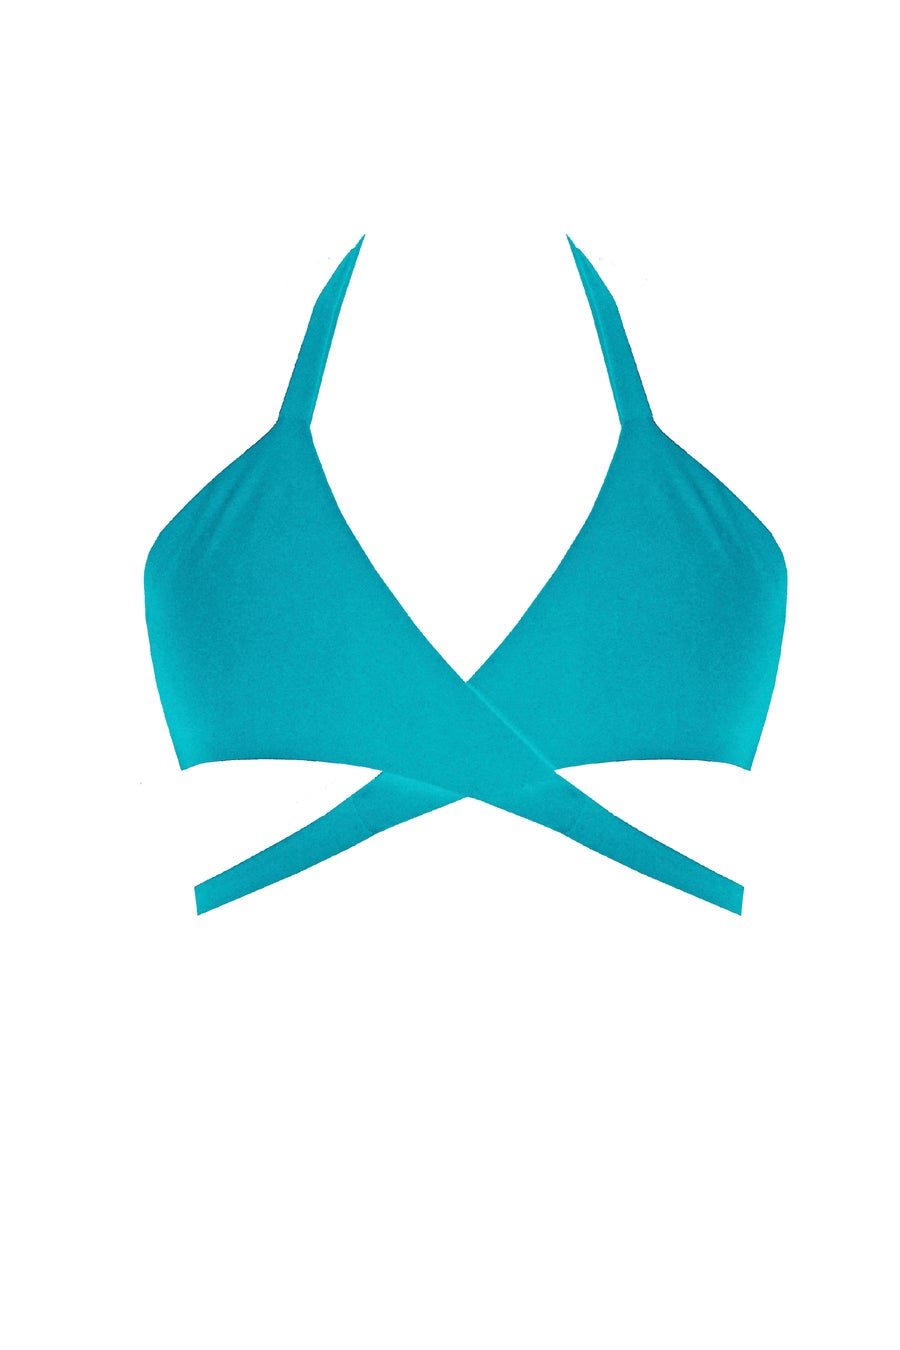 Image of Candy Wrap Top - Turquoise